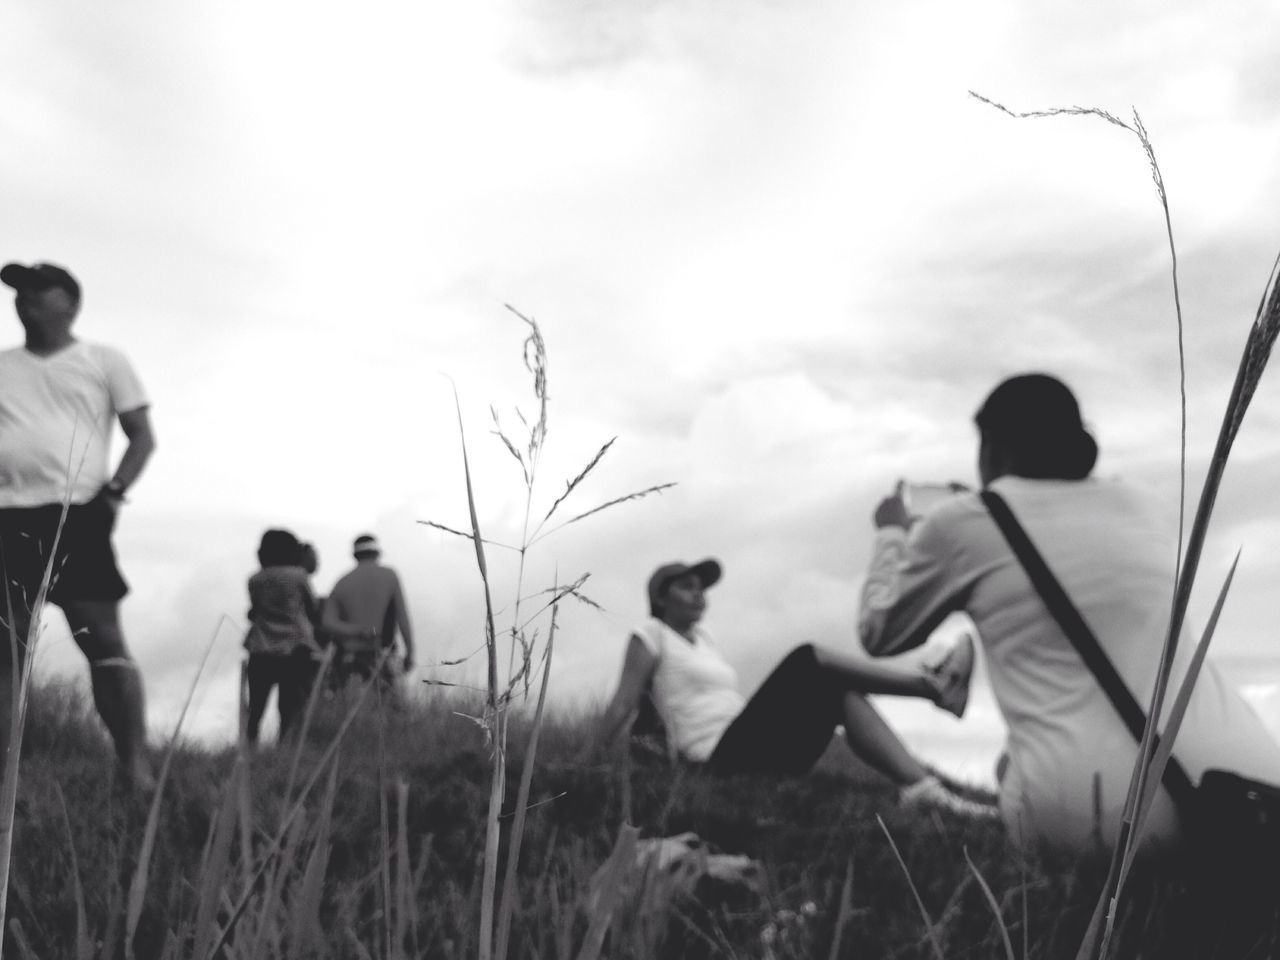 Monochrome Photography Black & White Sky Real People Group Of People Selfie✌ Technology People And Places Outdoors Leisure Activity Enjoying Life Bike Trail Away From The Hustle Scenery Background Defocus Hiking Adventures EyeEm Nature Lover Eyeem Monochrome Eyeem Black And White IPhone IMography Eyeem Philippines Enjoy The New Normal